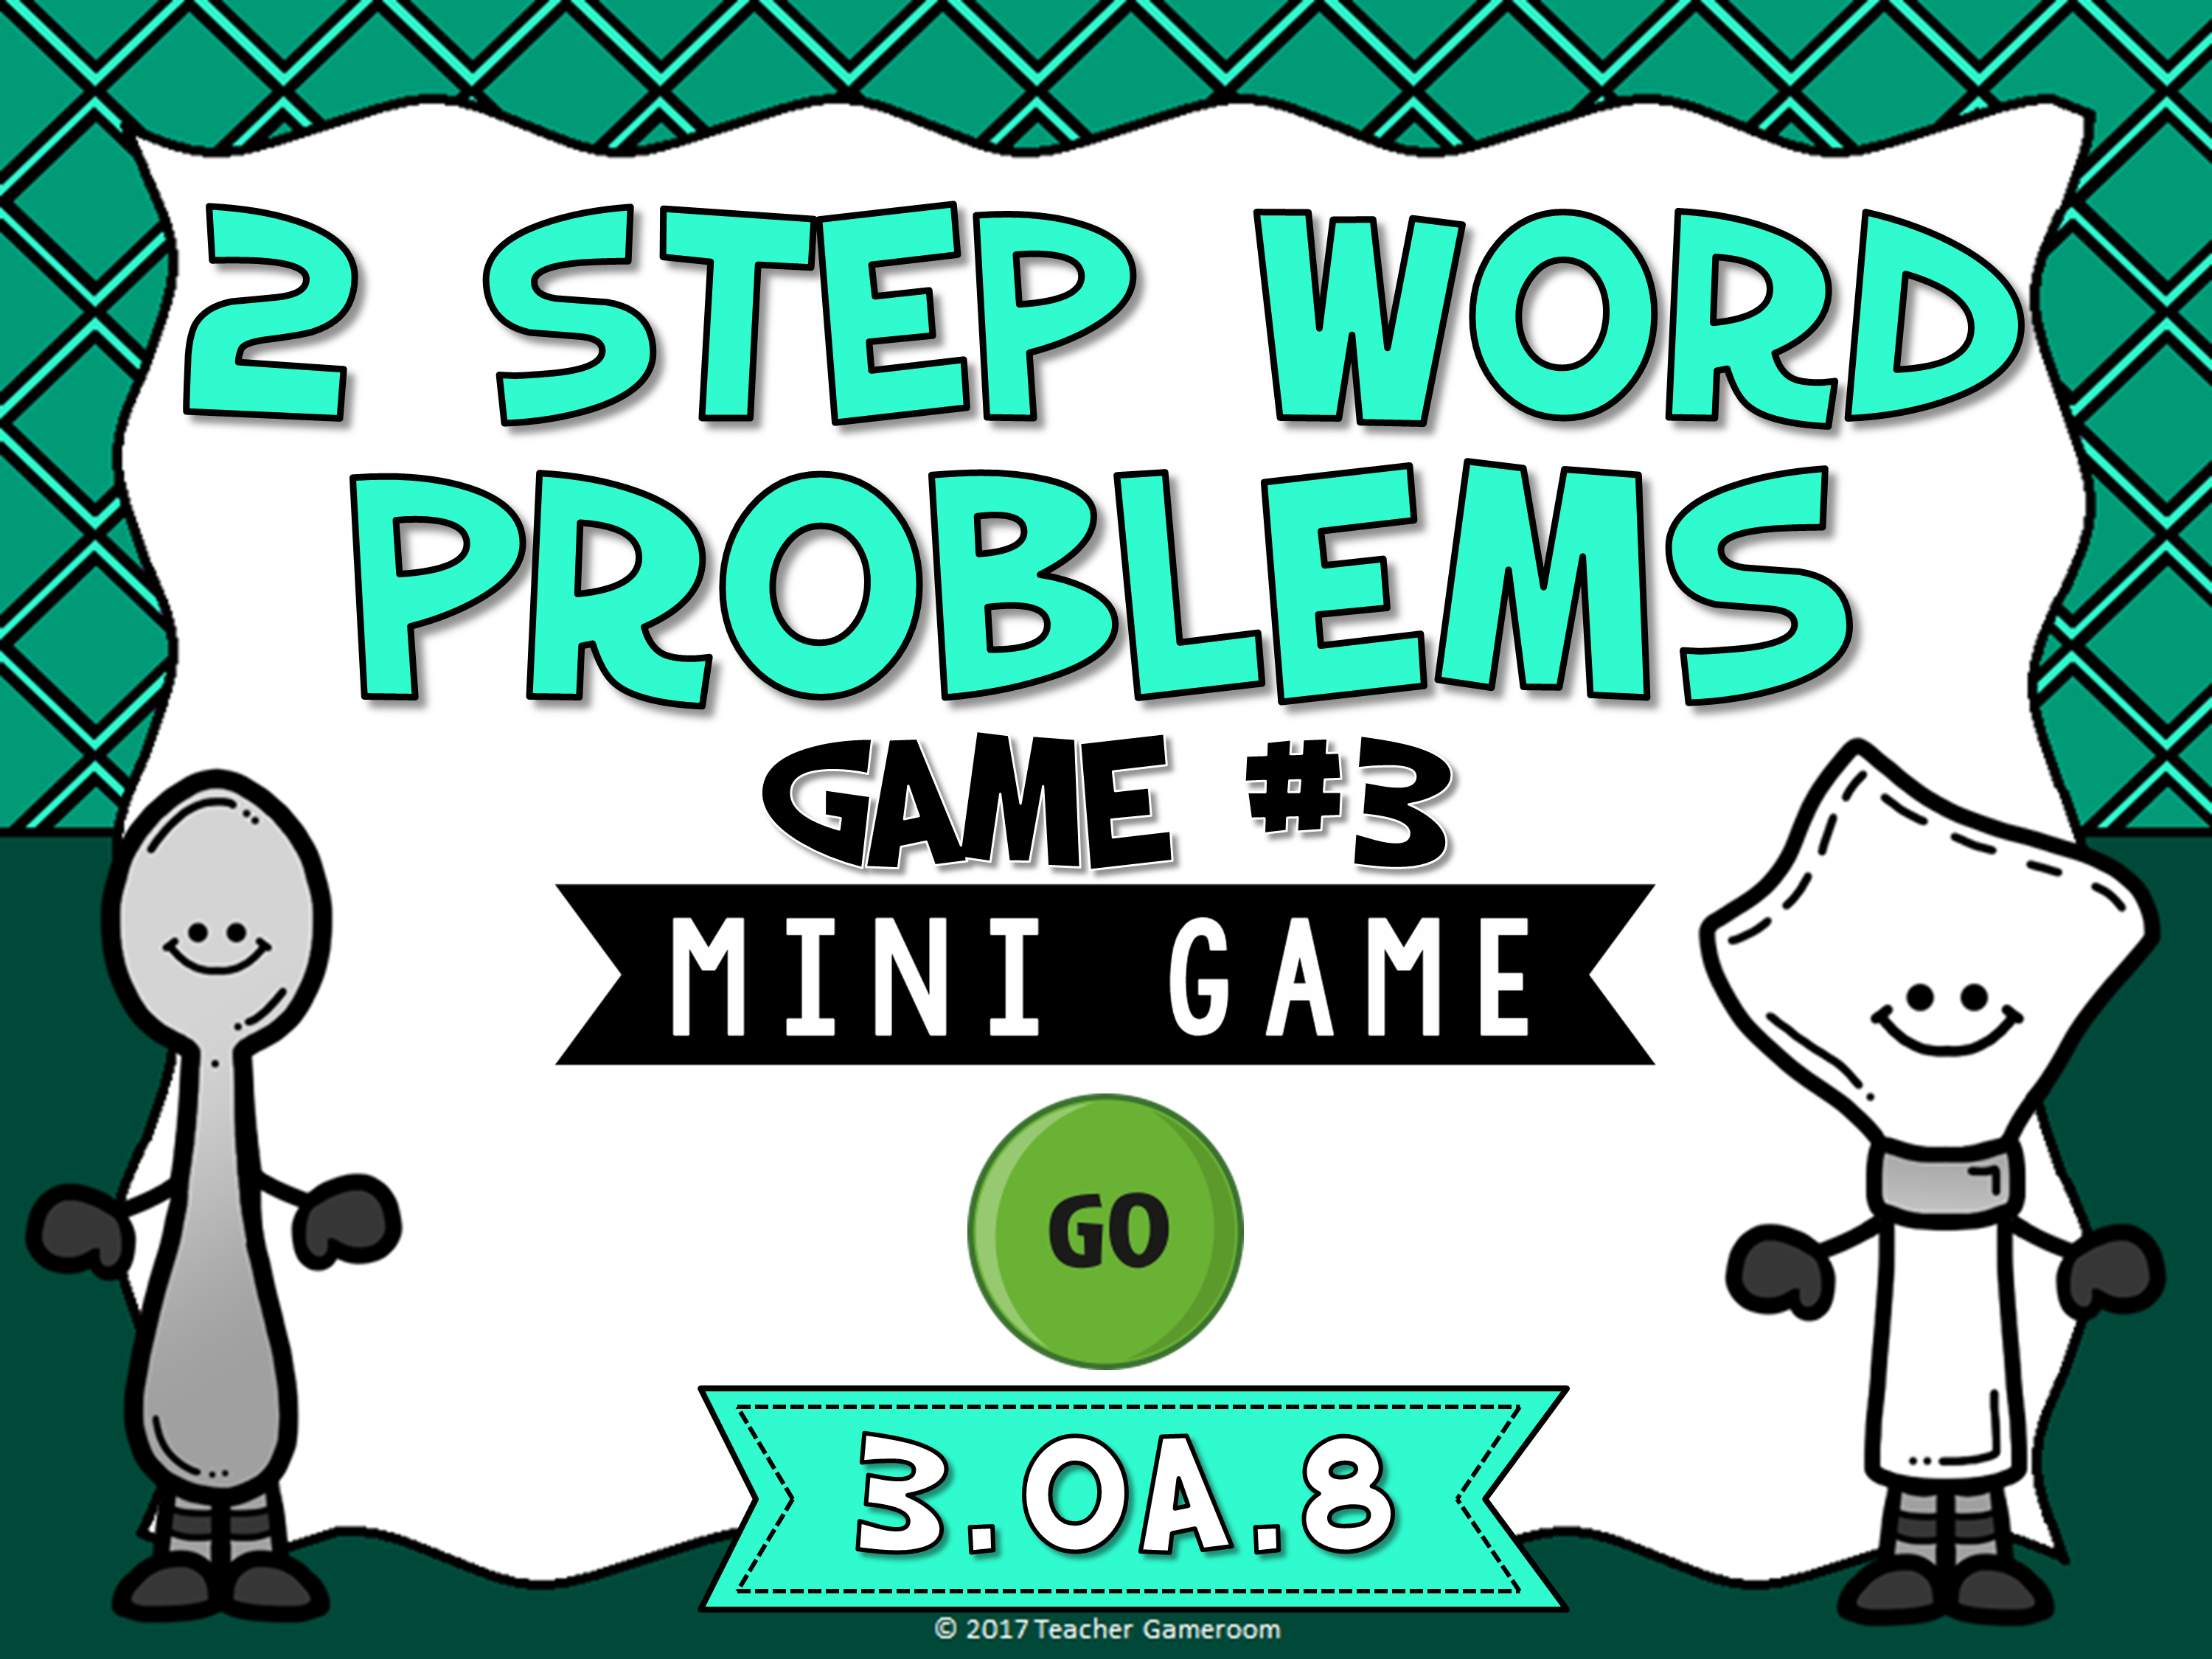 2 Step Words Problems Multiplication Mini Game